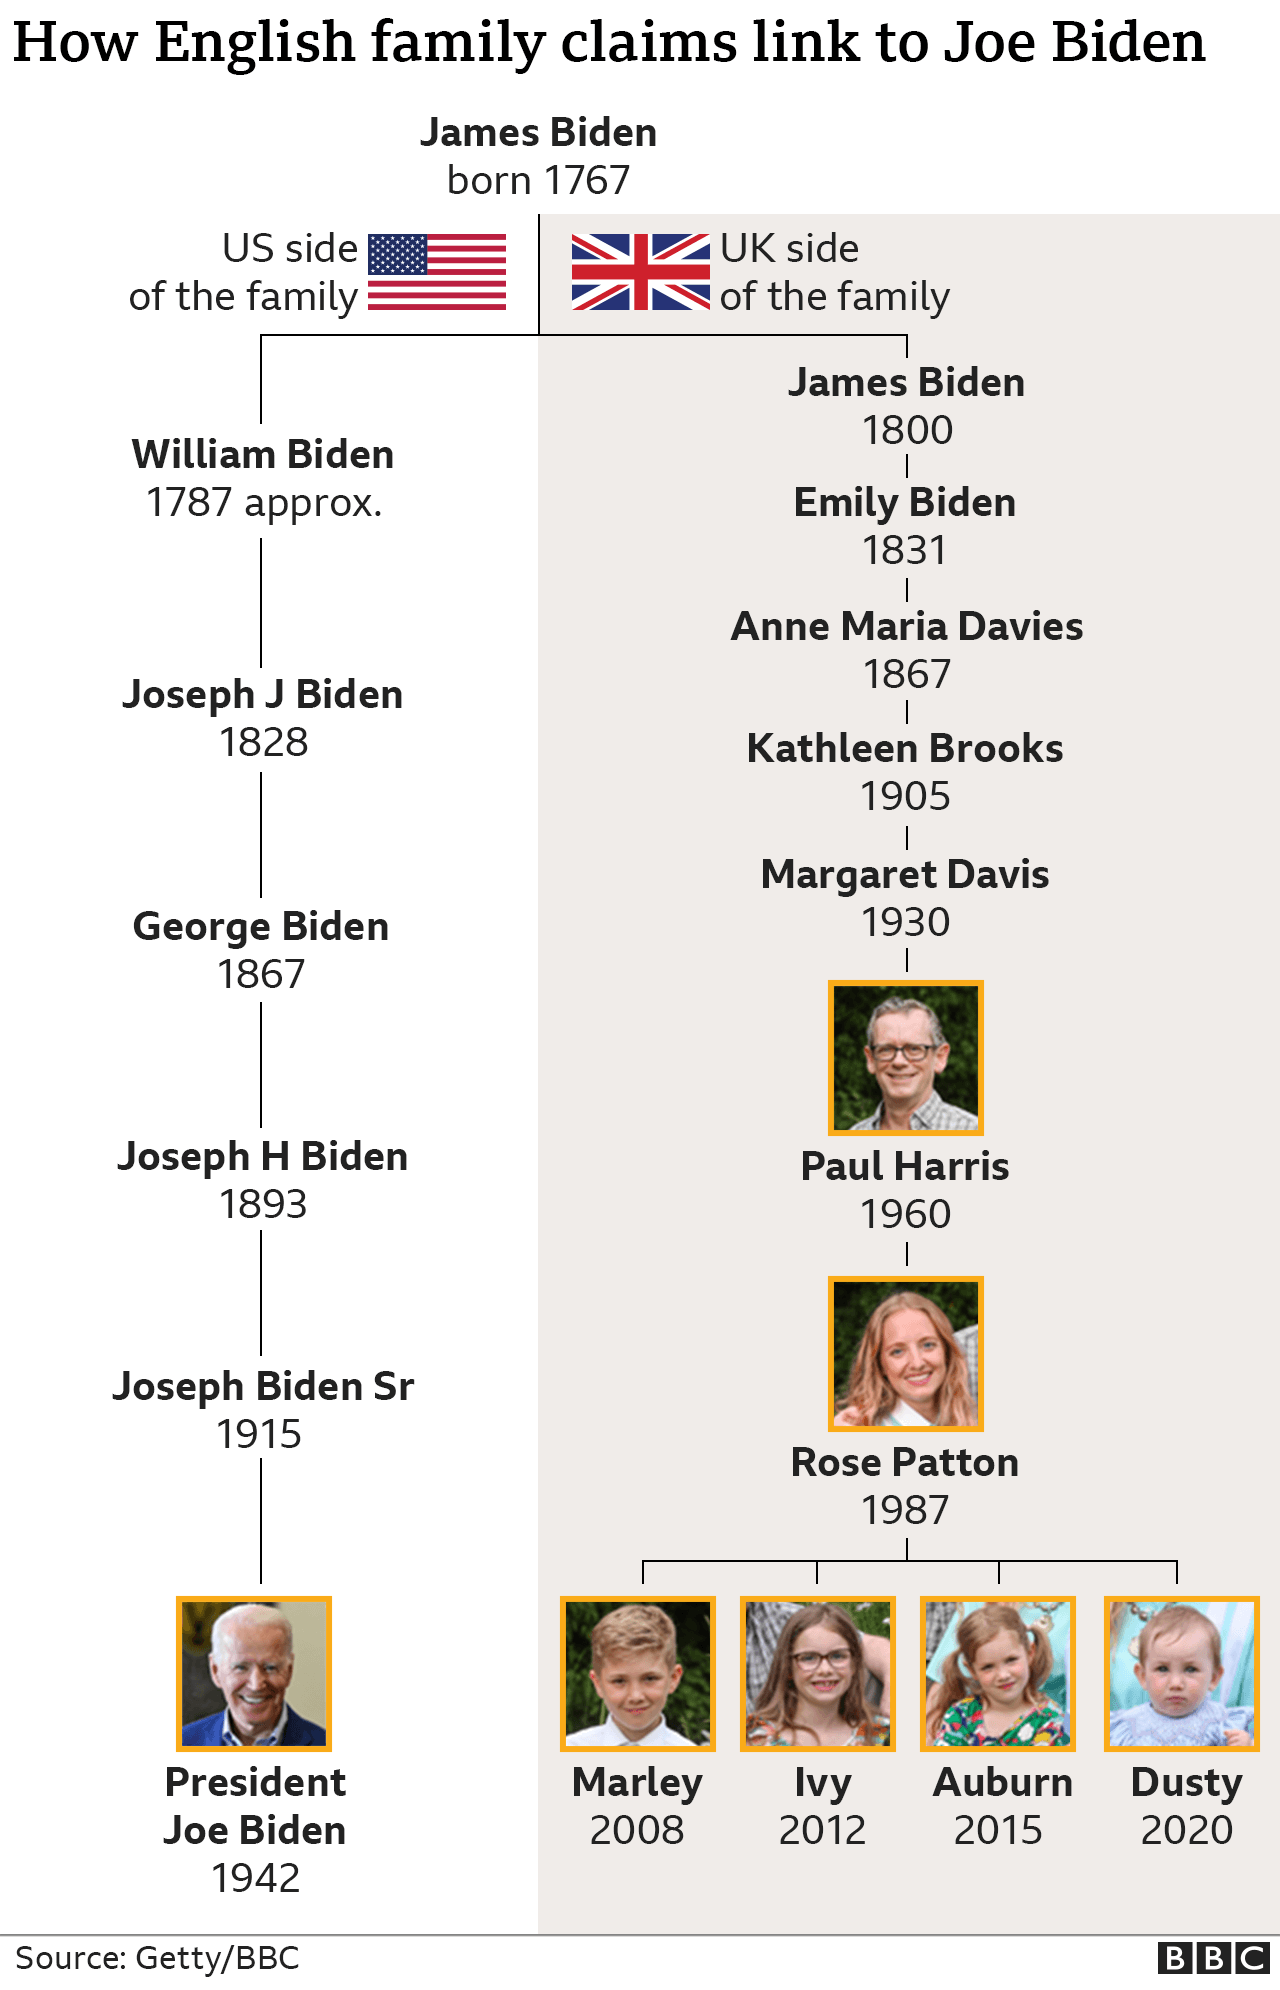 A family tree showing the link between President Joe Biden and an English family